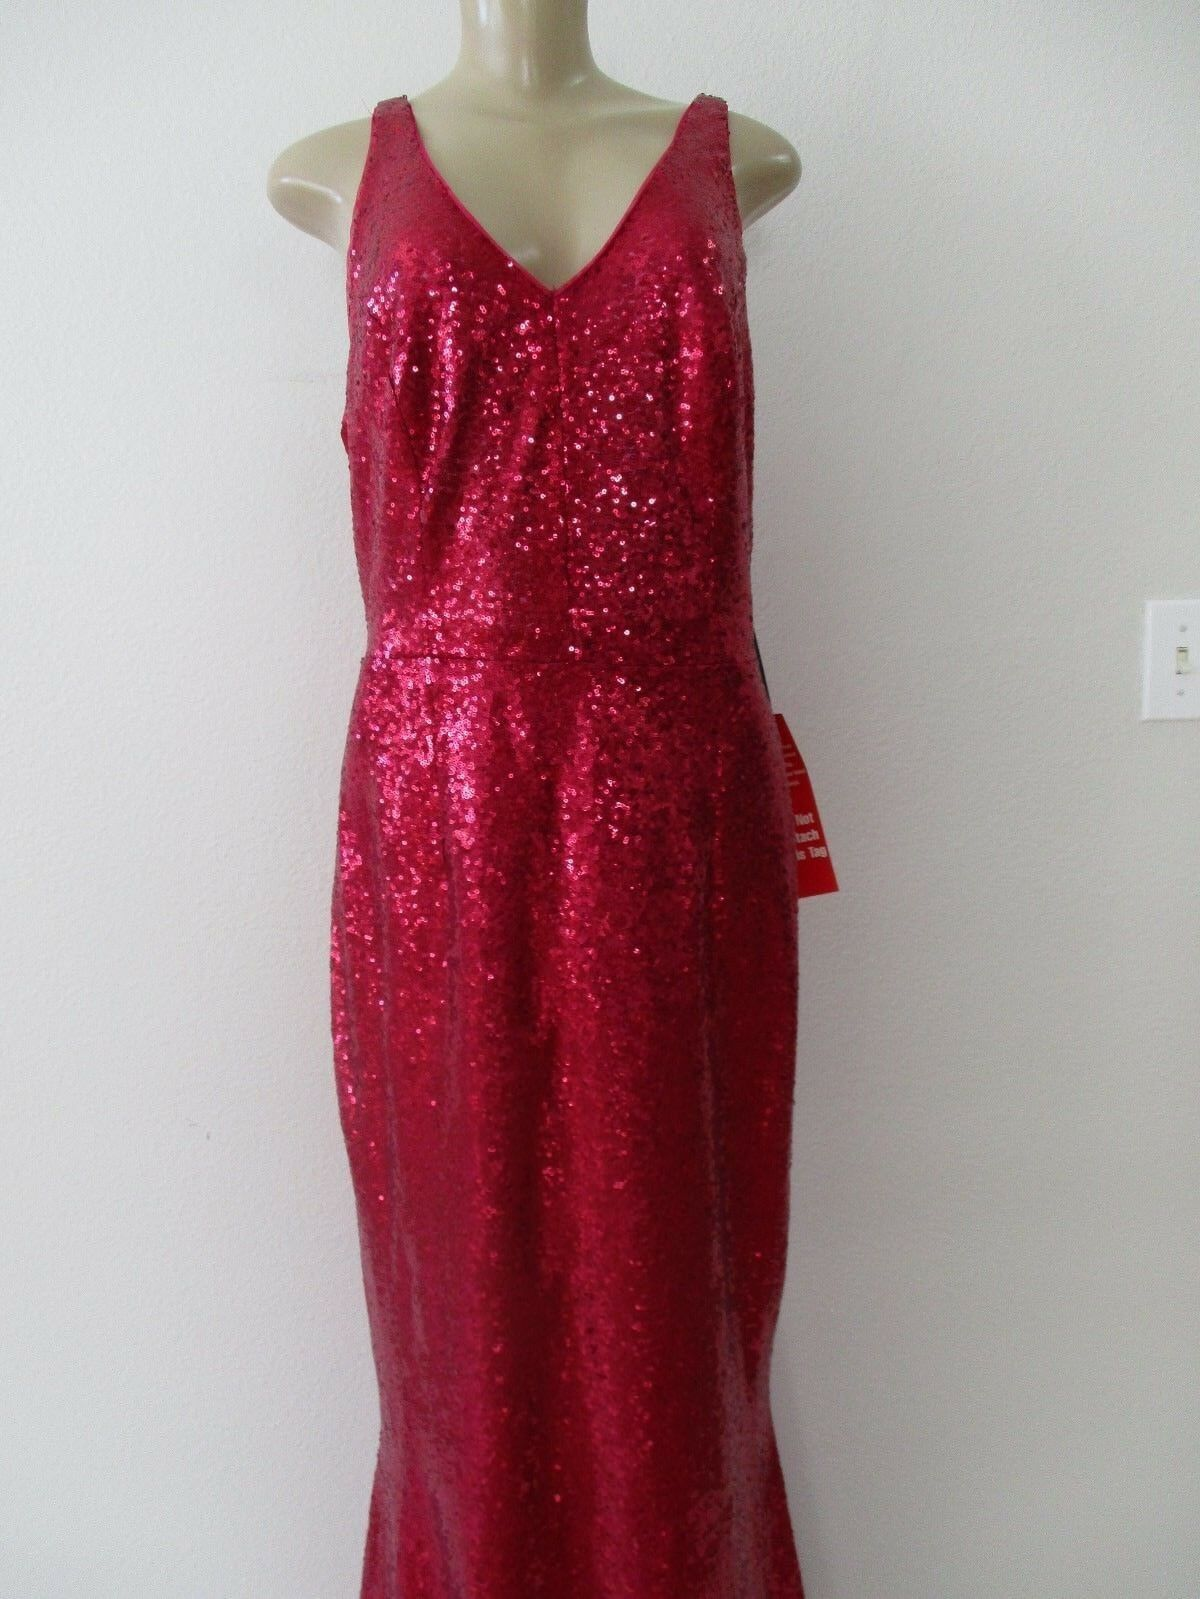 2e72e0d67a2 MARINA PINK FULLY SEQUIN EMBELLISHED SLEEVELESS LONG SIZE 14 - NWT DRESS  nxkgkz2604-Dresses